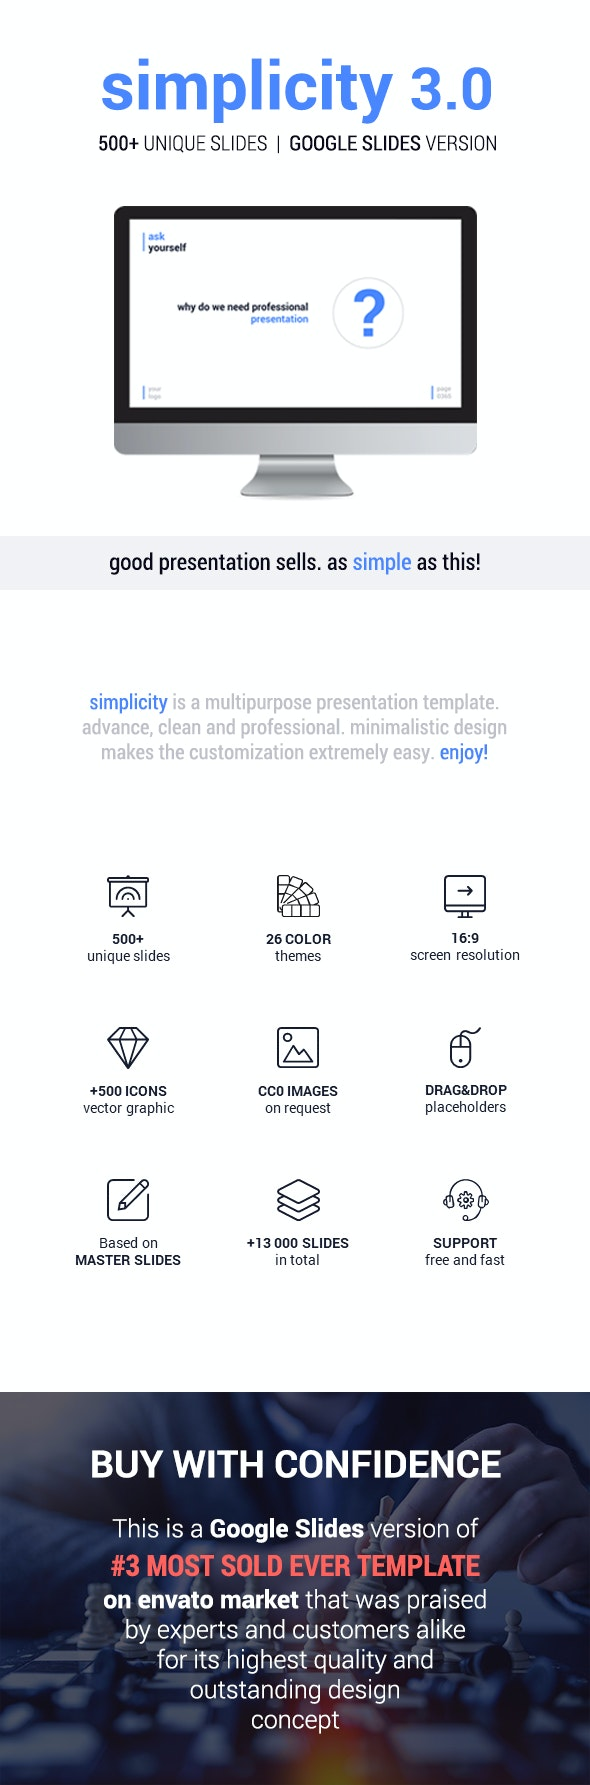 Simplicity – Premium and Easy to Edit Template - Google Slides - Google Slides Presentation Templates